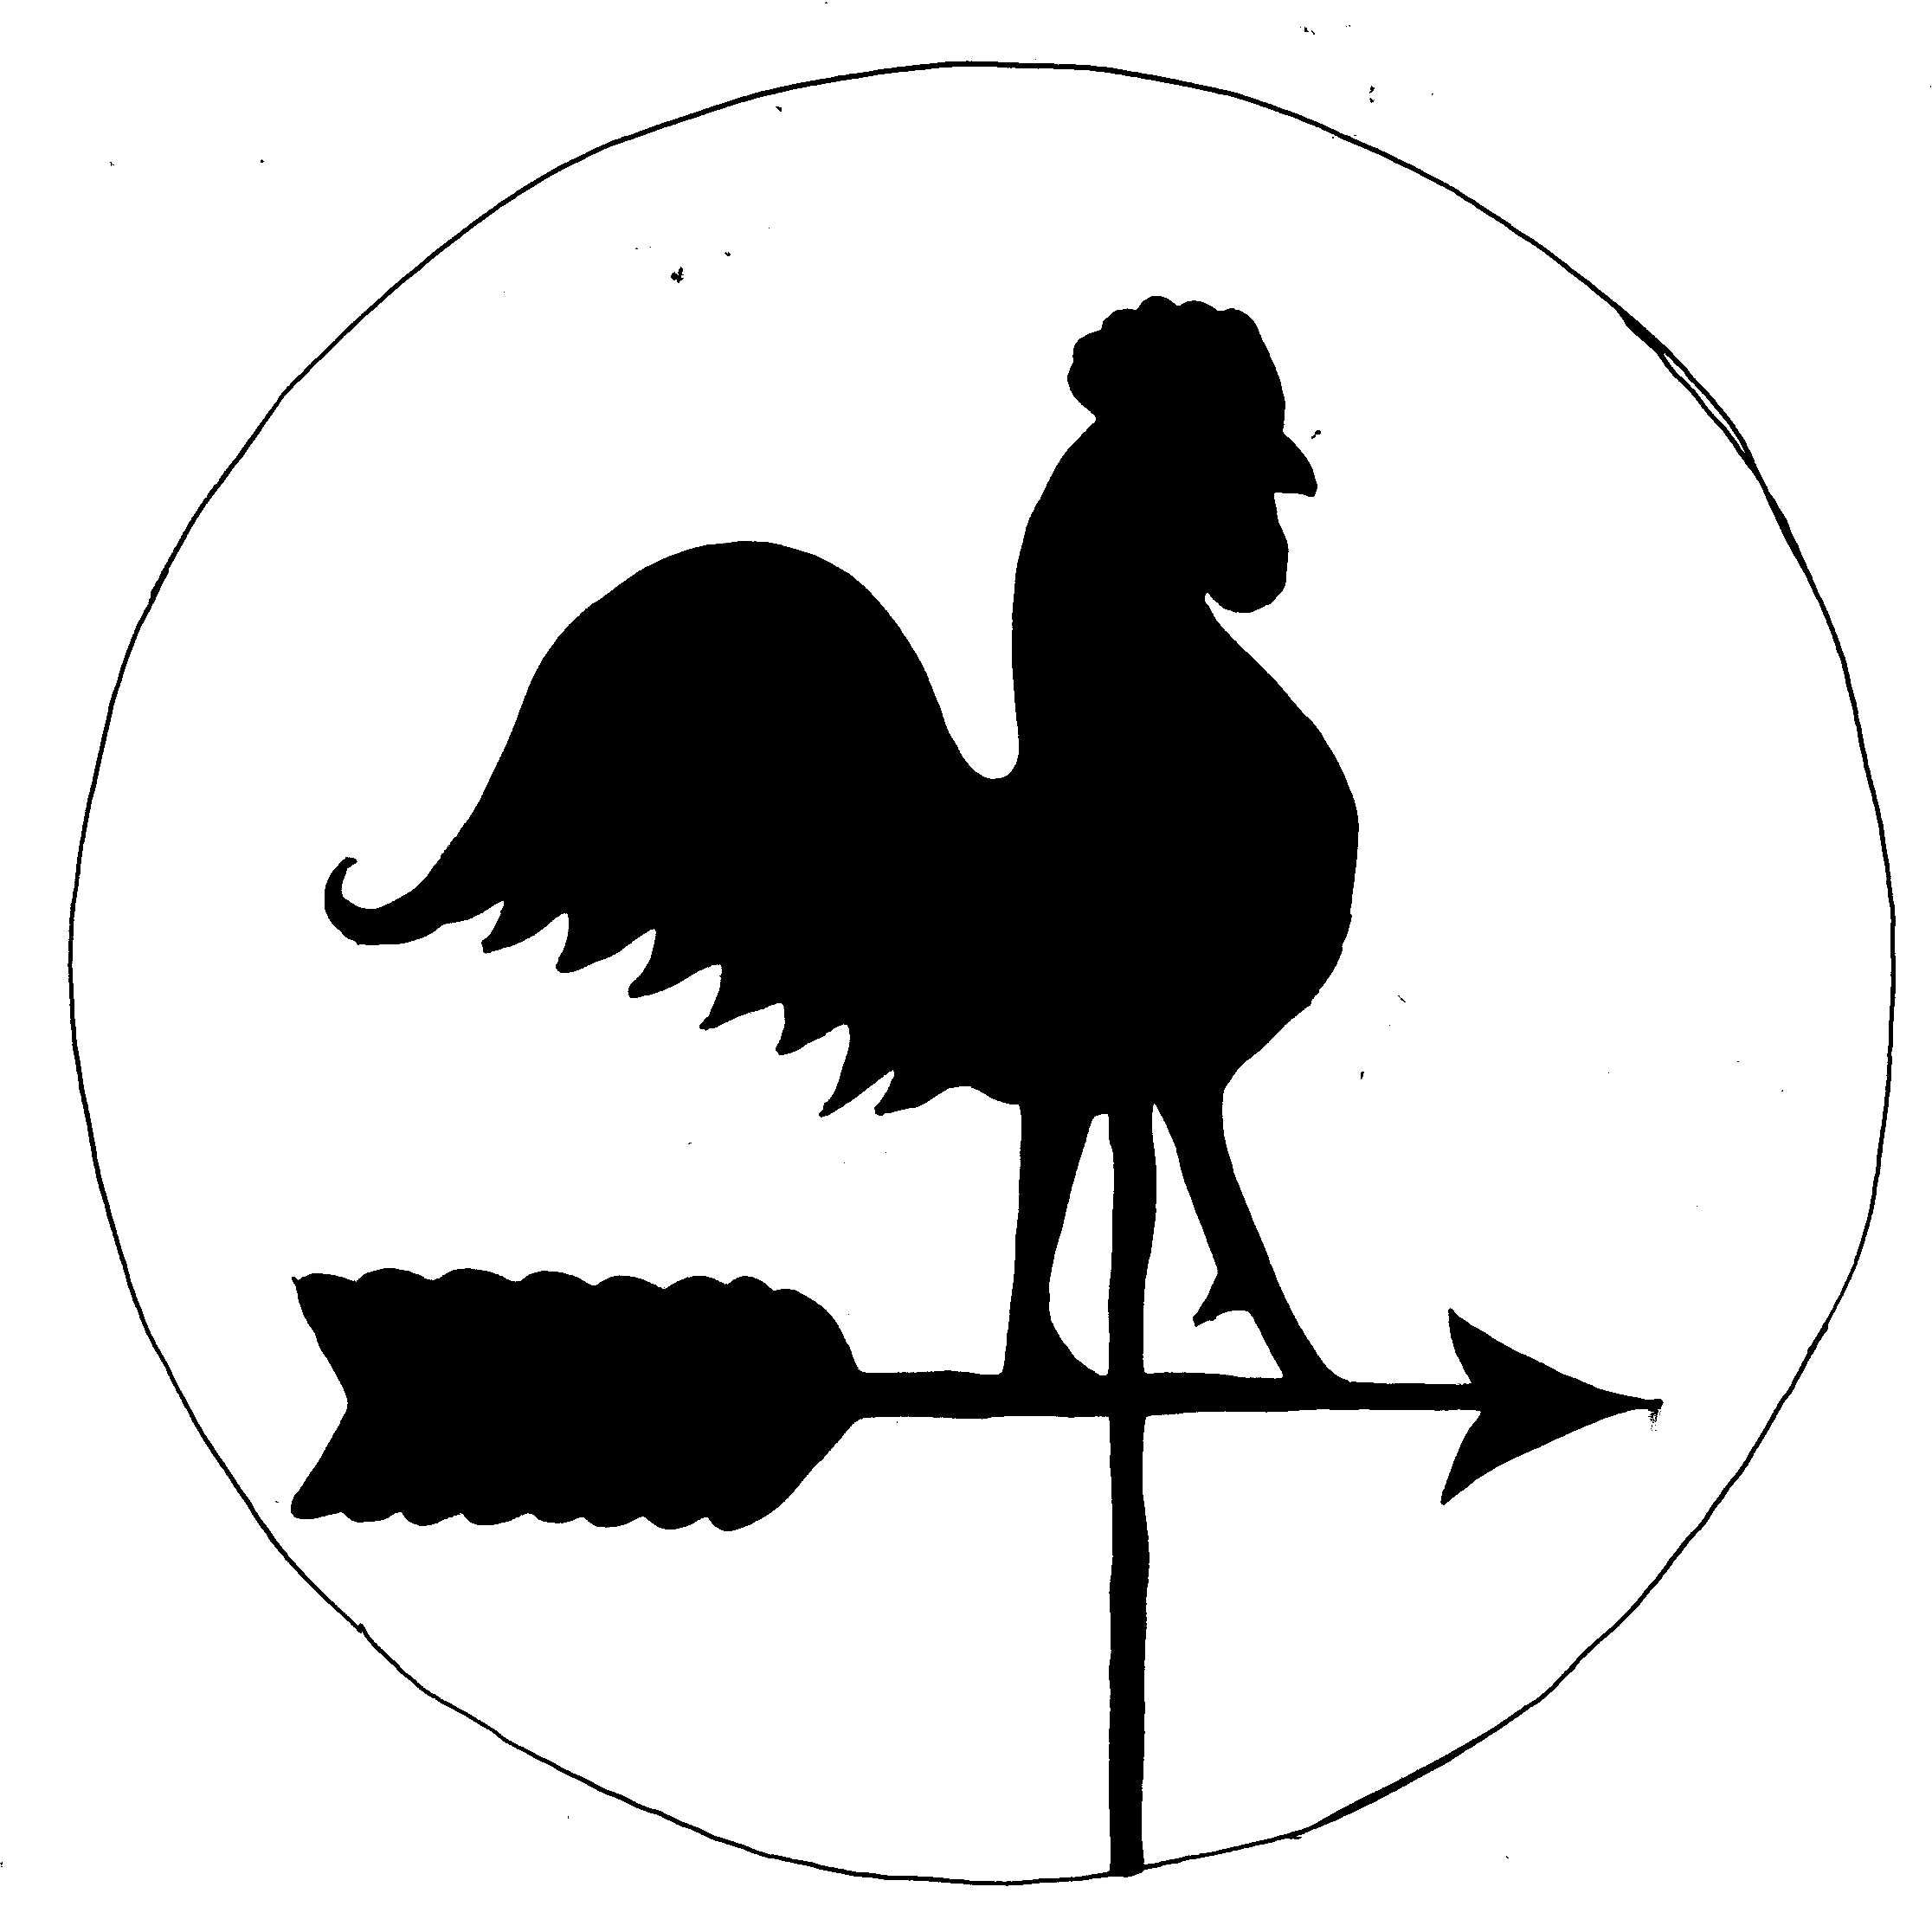 rooster weather vane - Google Search - Wind Vane PNG Black And White